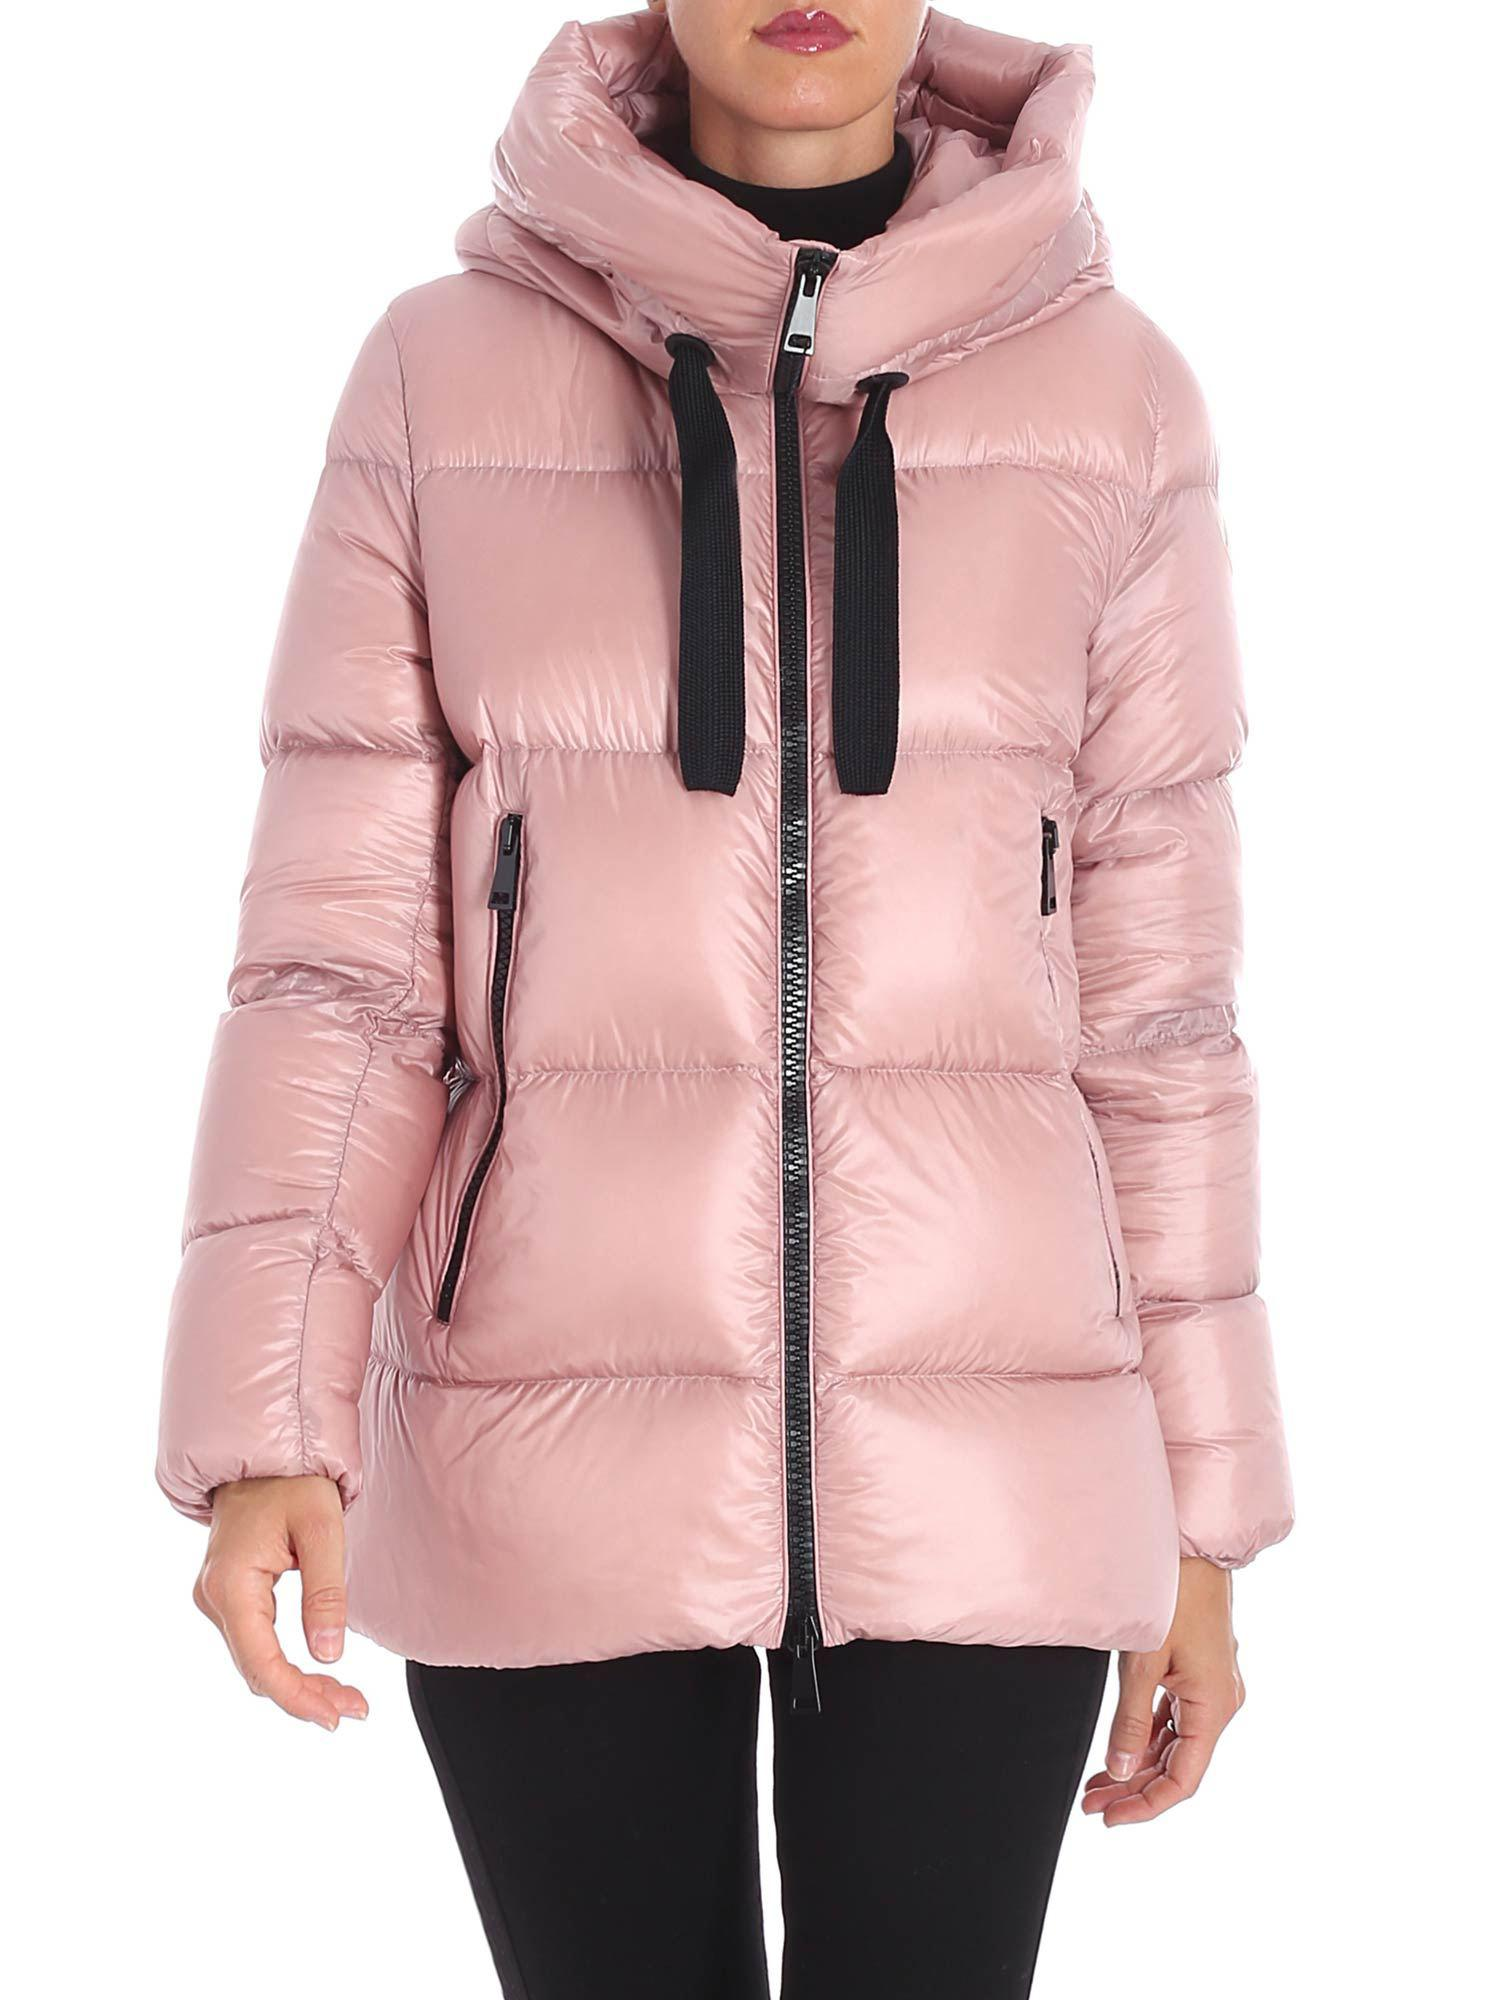 8a8439d27 Moncler Pink Serin Down Jacket in Pink - Lyst